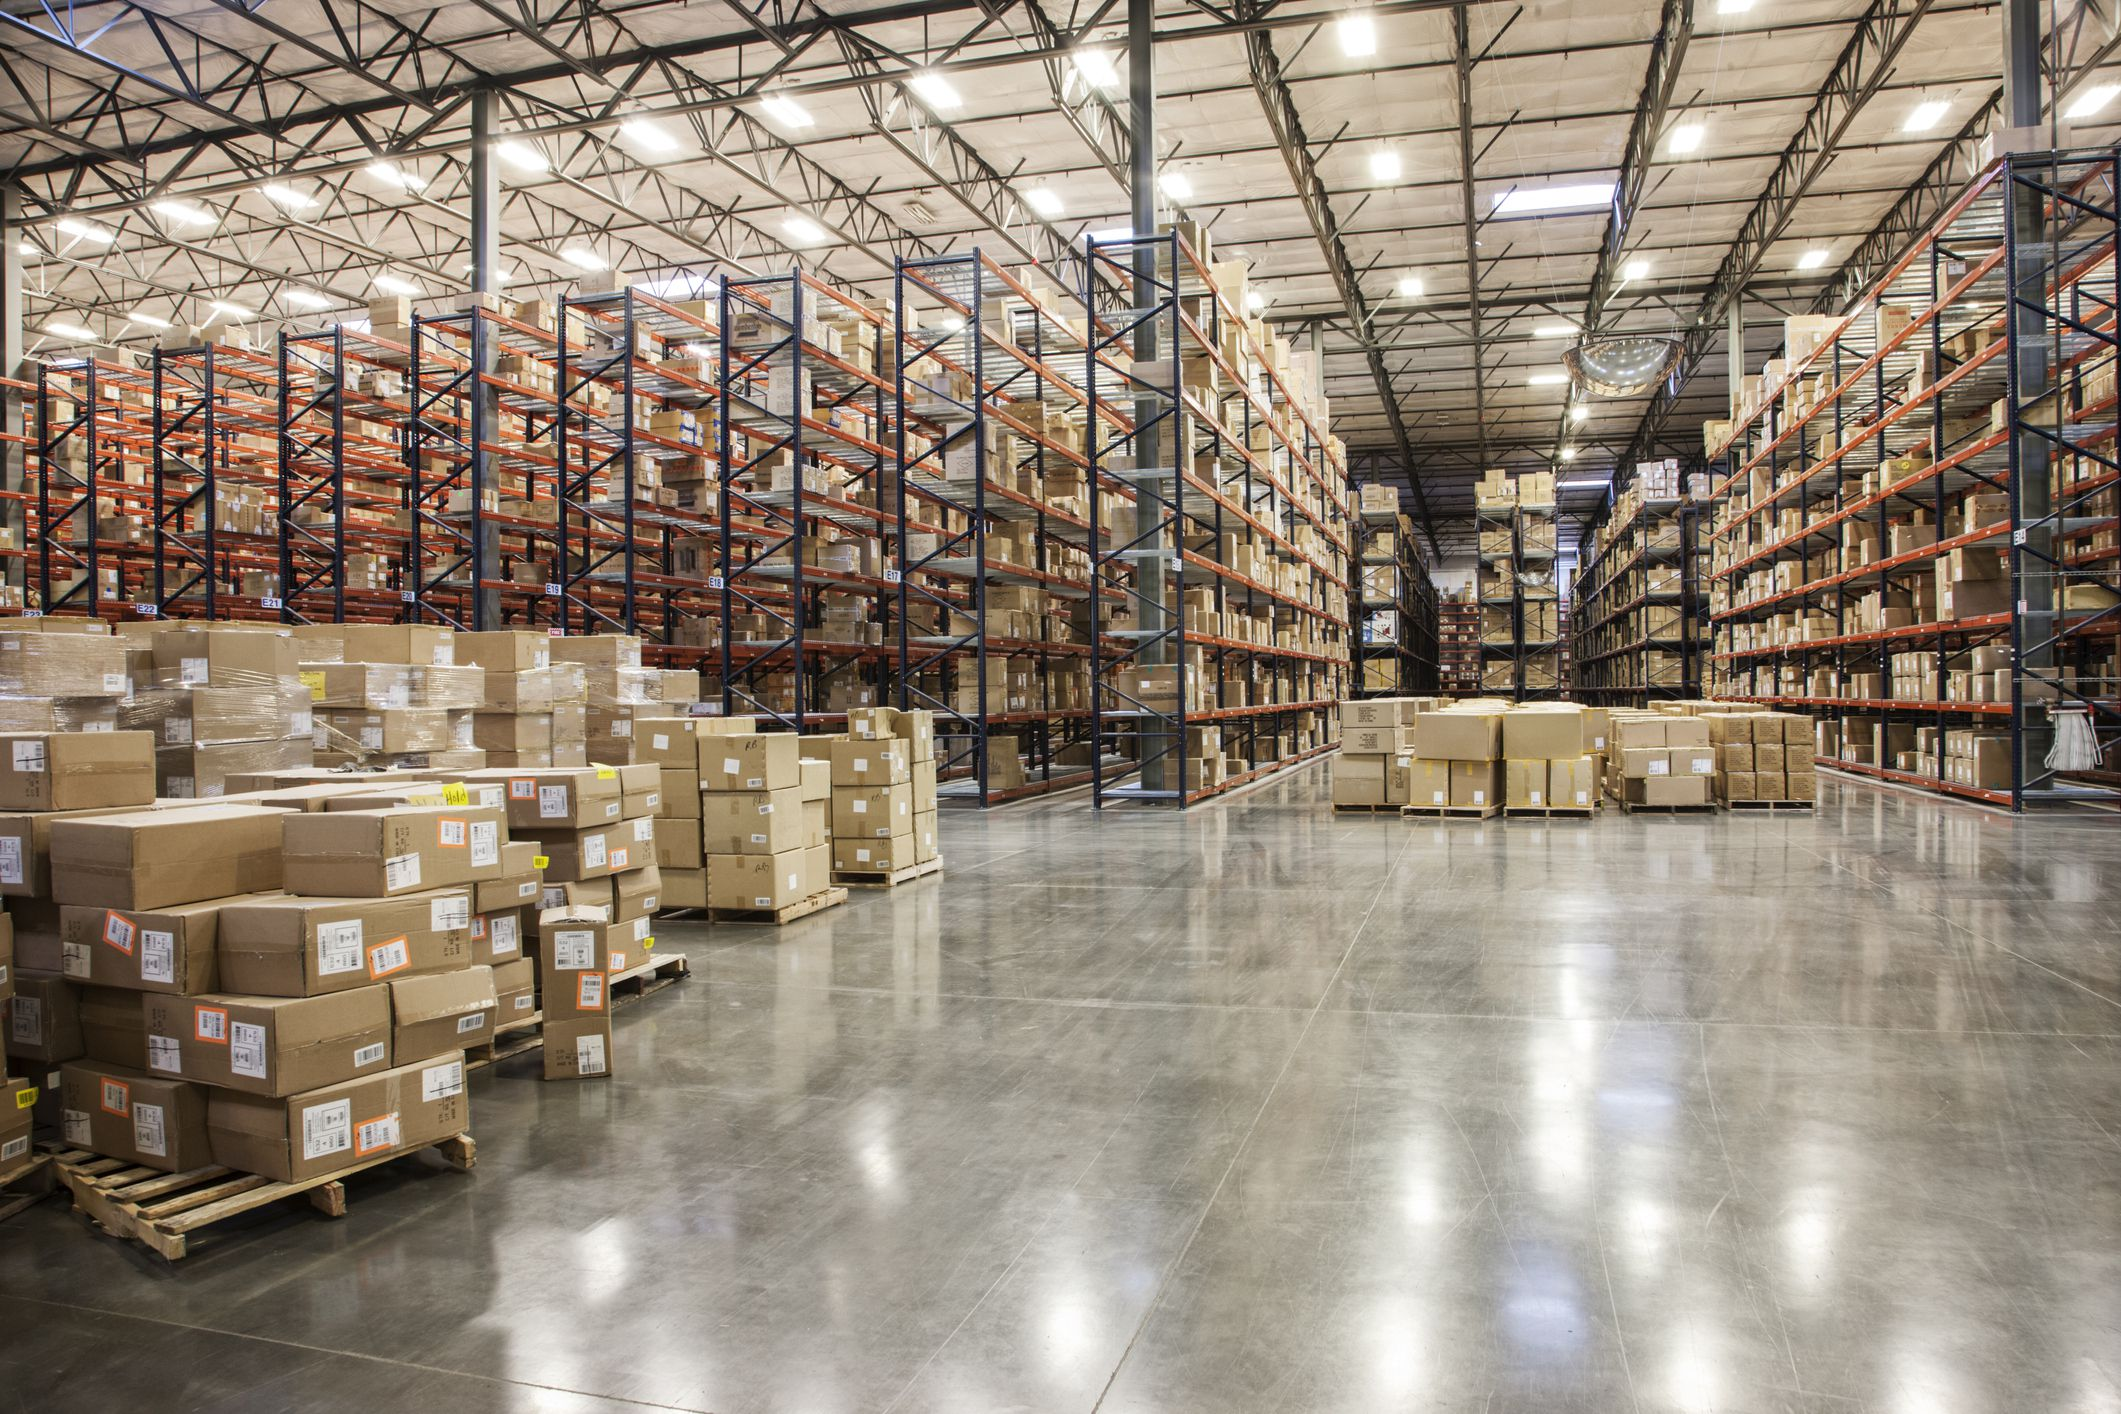 Warehouse Logistics: Cross-Docking on